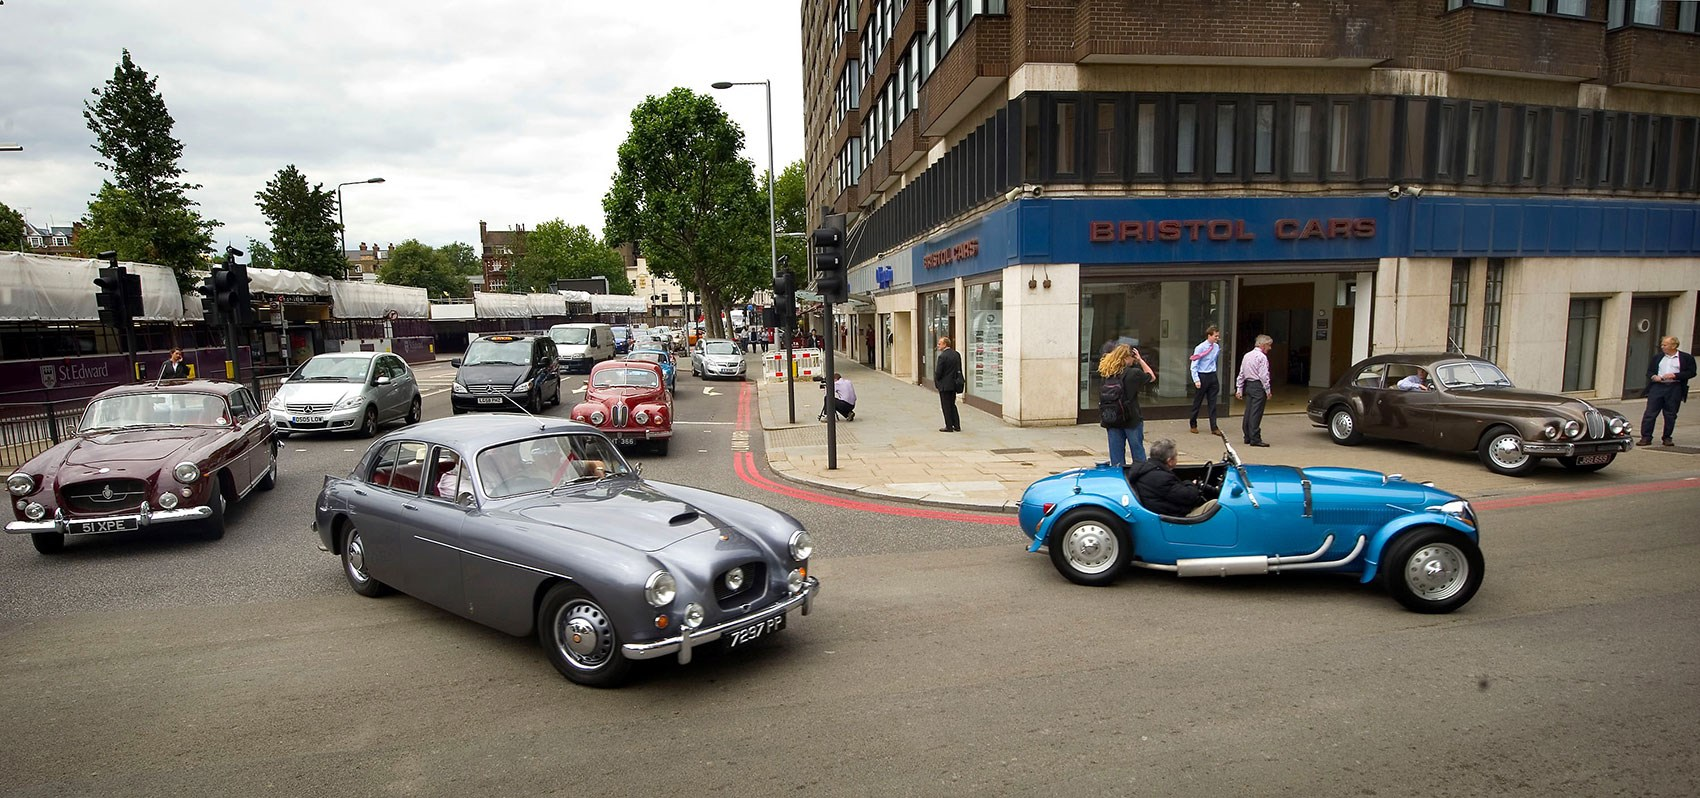 Bristol Cars Is Back With New 2015 Pinnacle Model